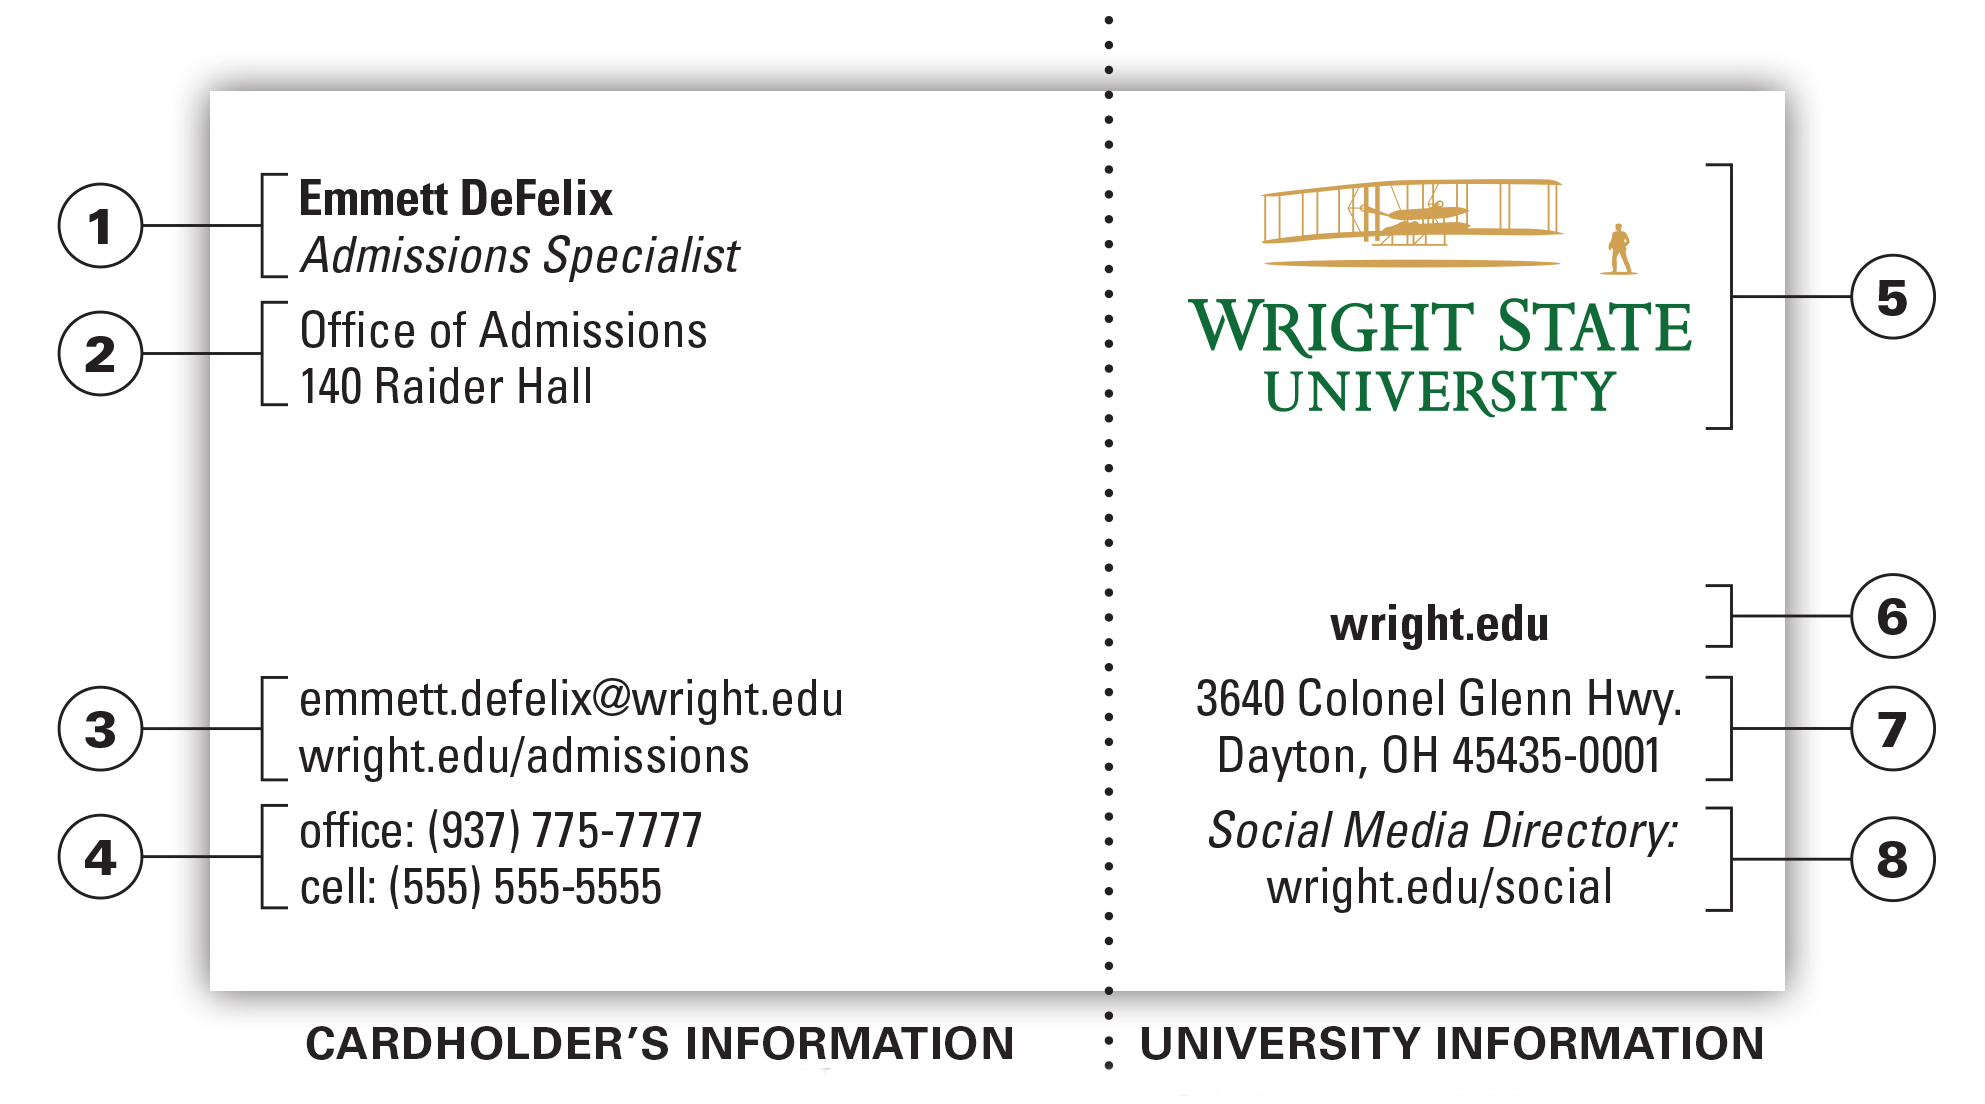 University business card office of marketing wright state university wright state university business card template reheart Gallery